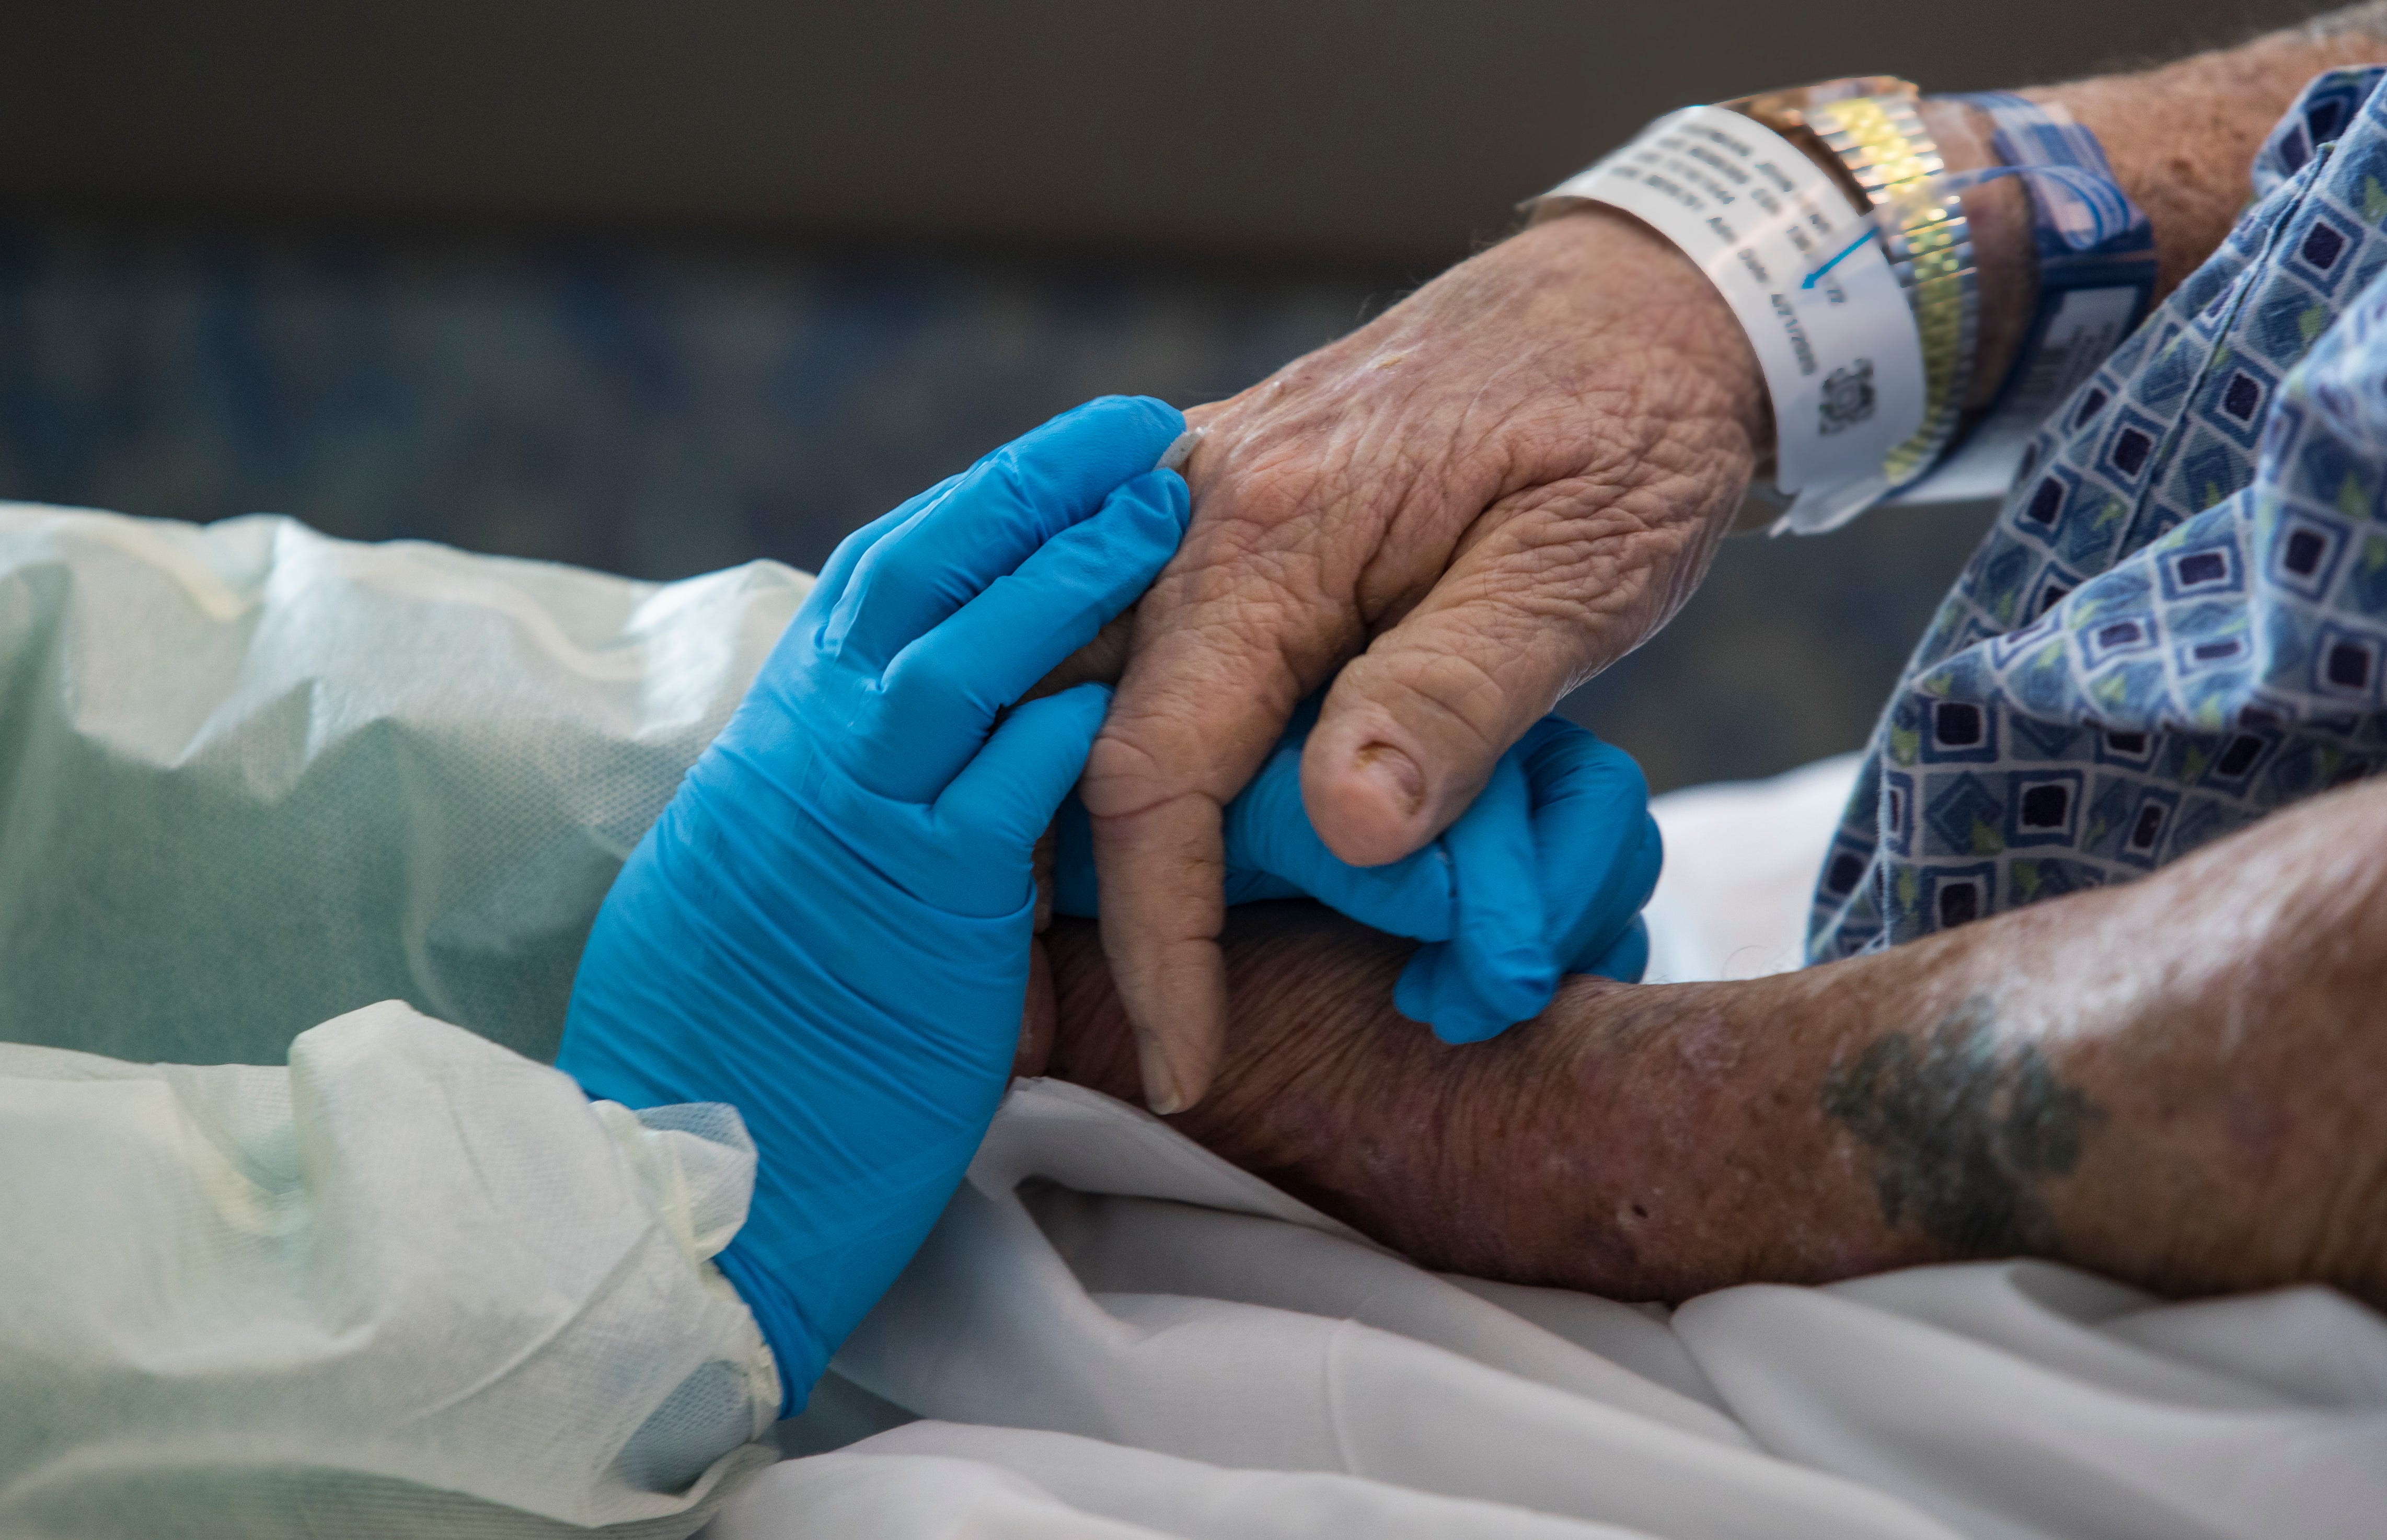 """John Henry Kaufmann, a patient who after showing symptoms similar to COVID-19 tested negative, shows his gratitude towards primary care nurse Sherri Parmar by gently grasping her hands during a tearful and emotional exchange Wednesday April 29, 2020. """"She always gives me the courage to bounce back. And I have,"""" Kaufmann said."""